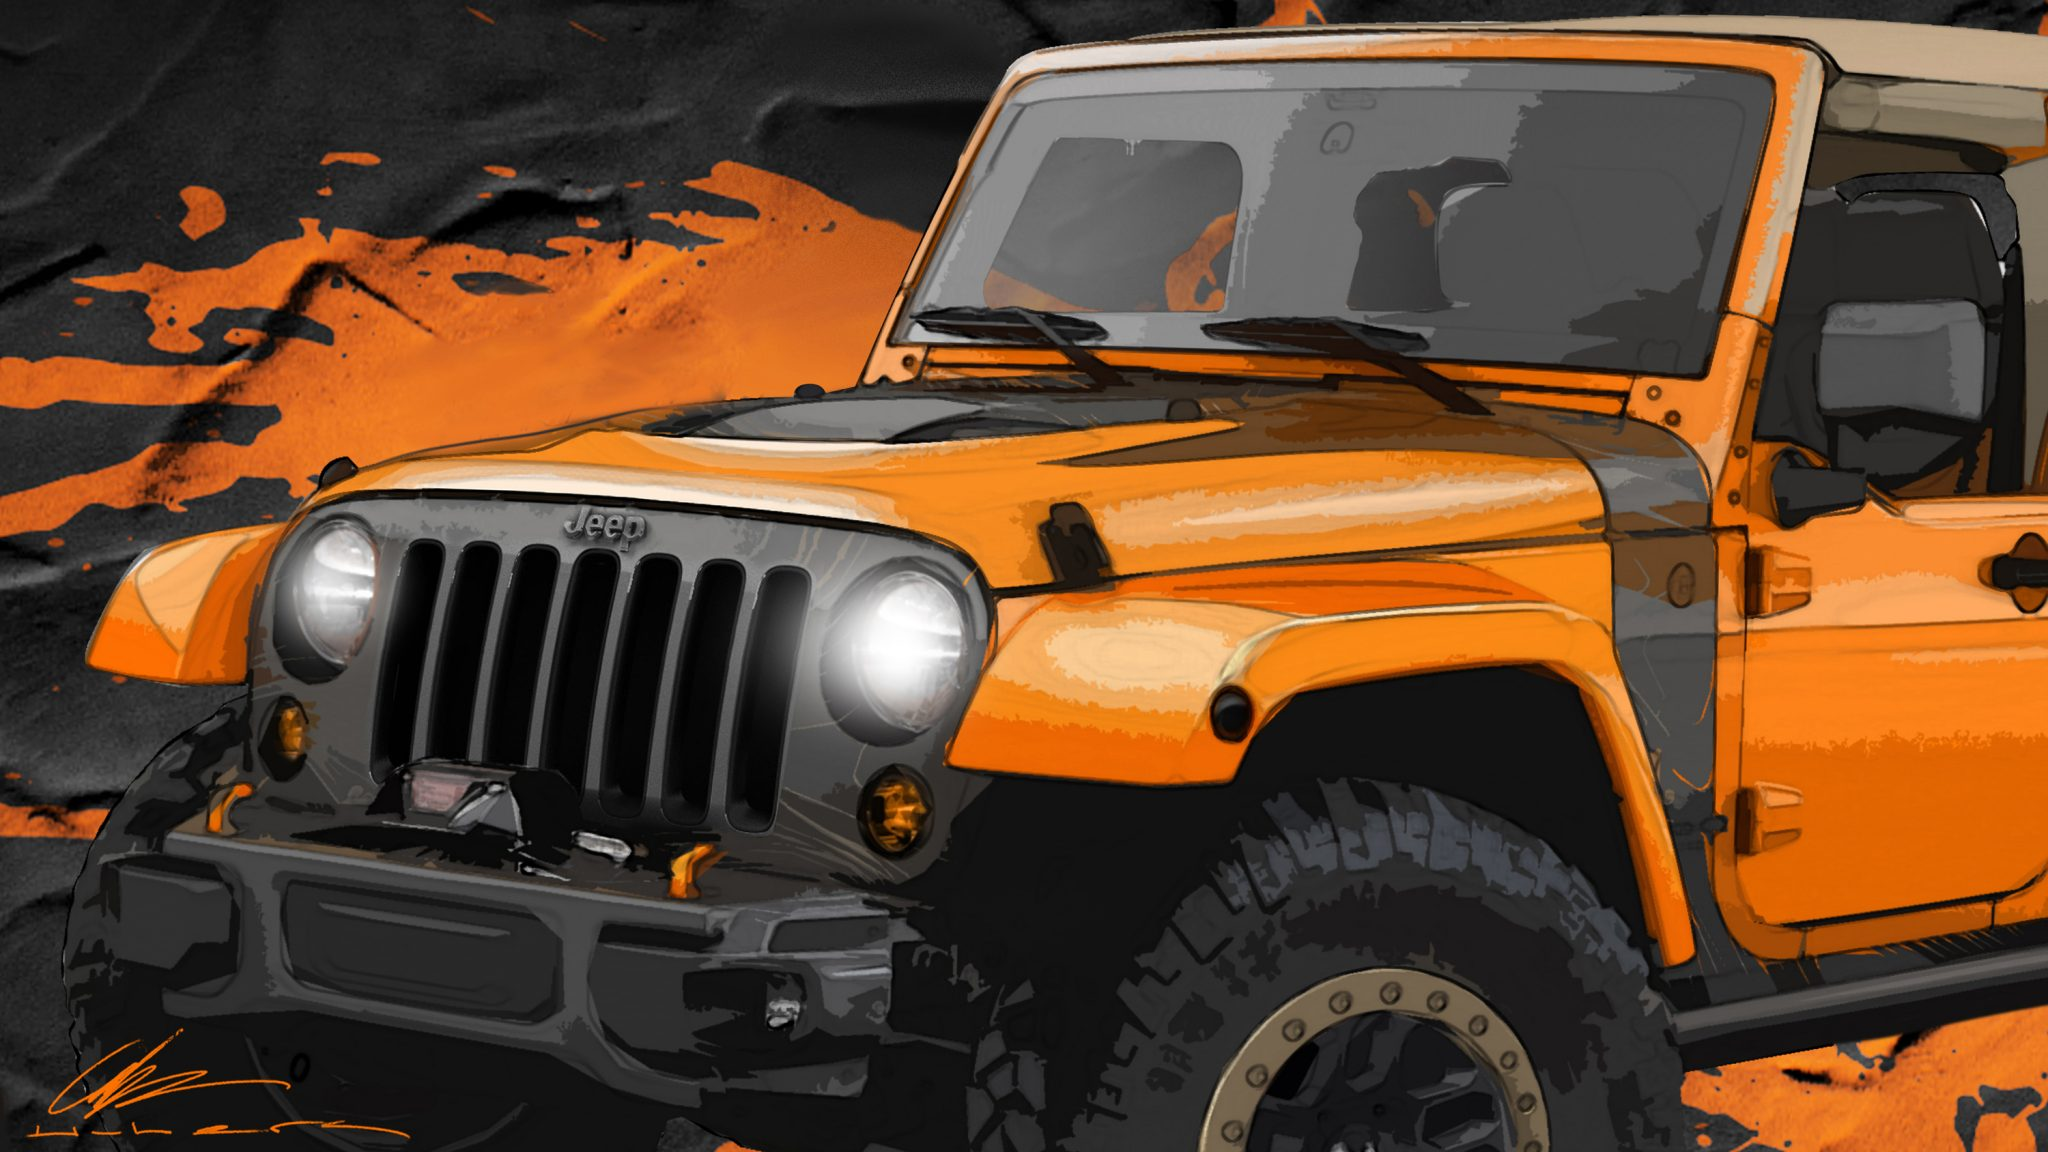 chrysler offers 2014 moab easter jeep safari vehicles sneak peek. Black Bedroom Furniture Sets. Home Design Ideas